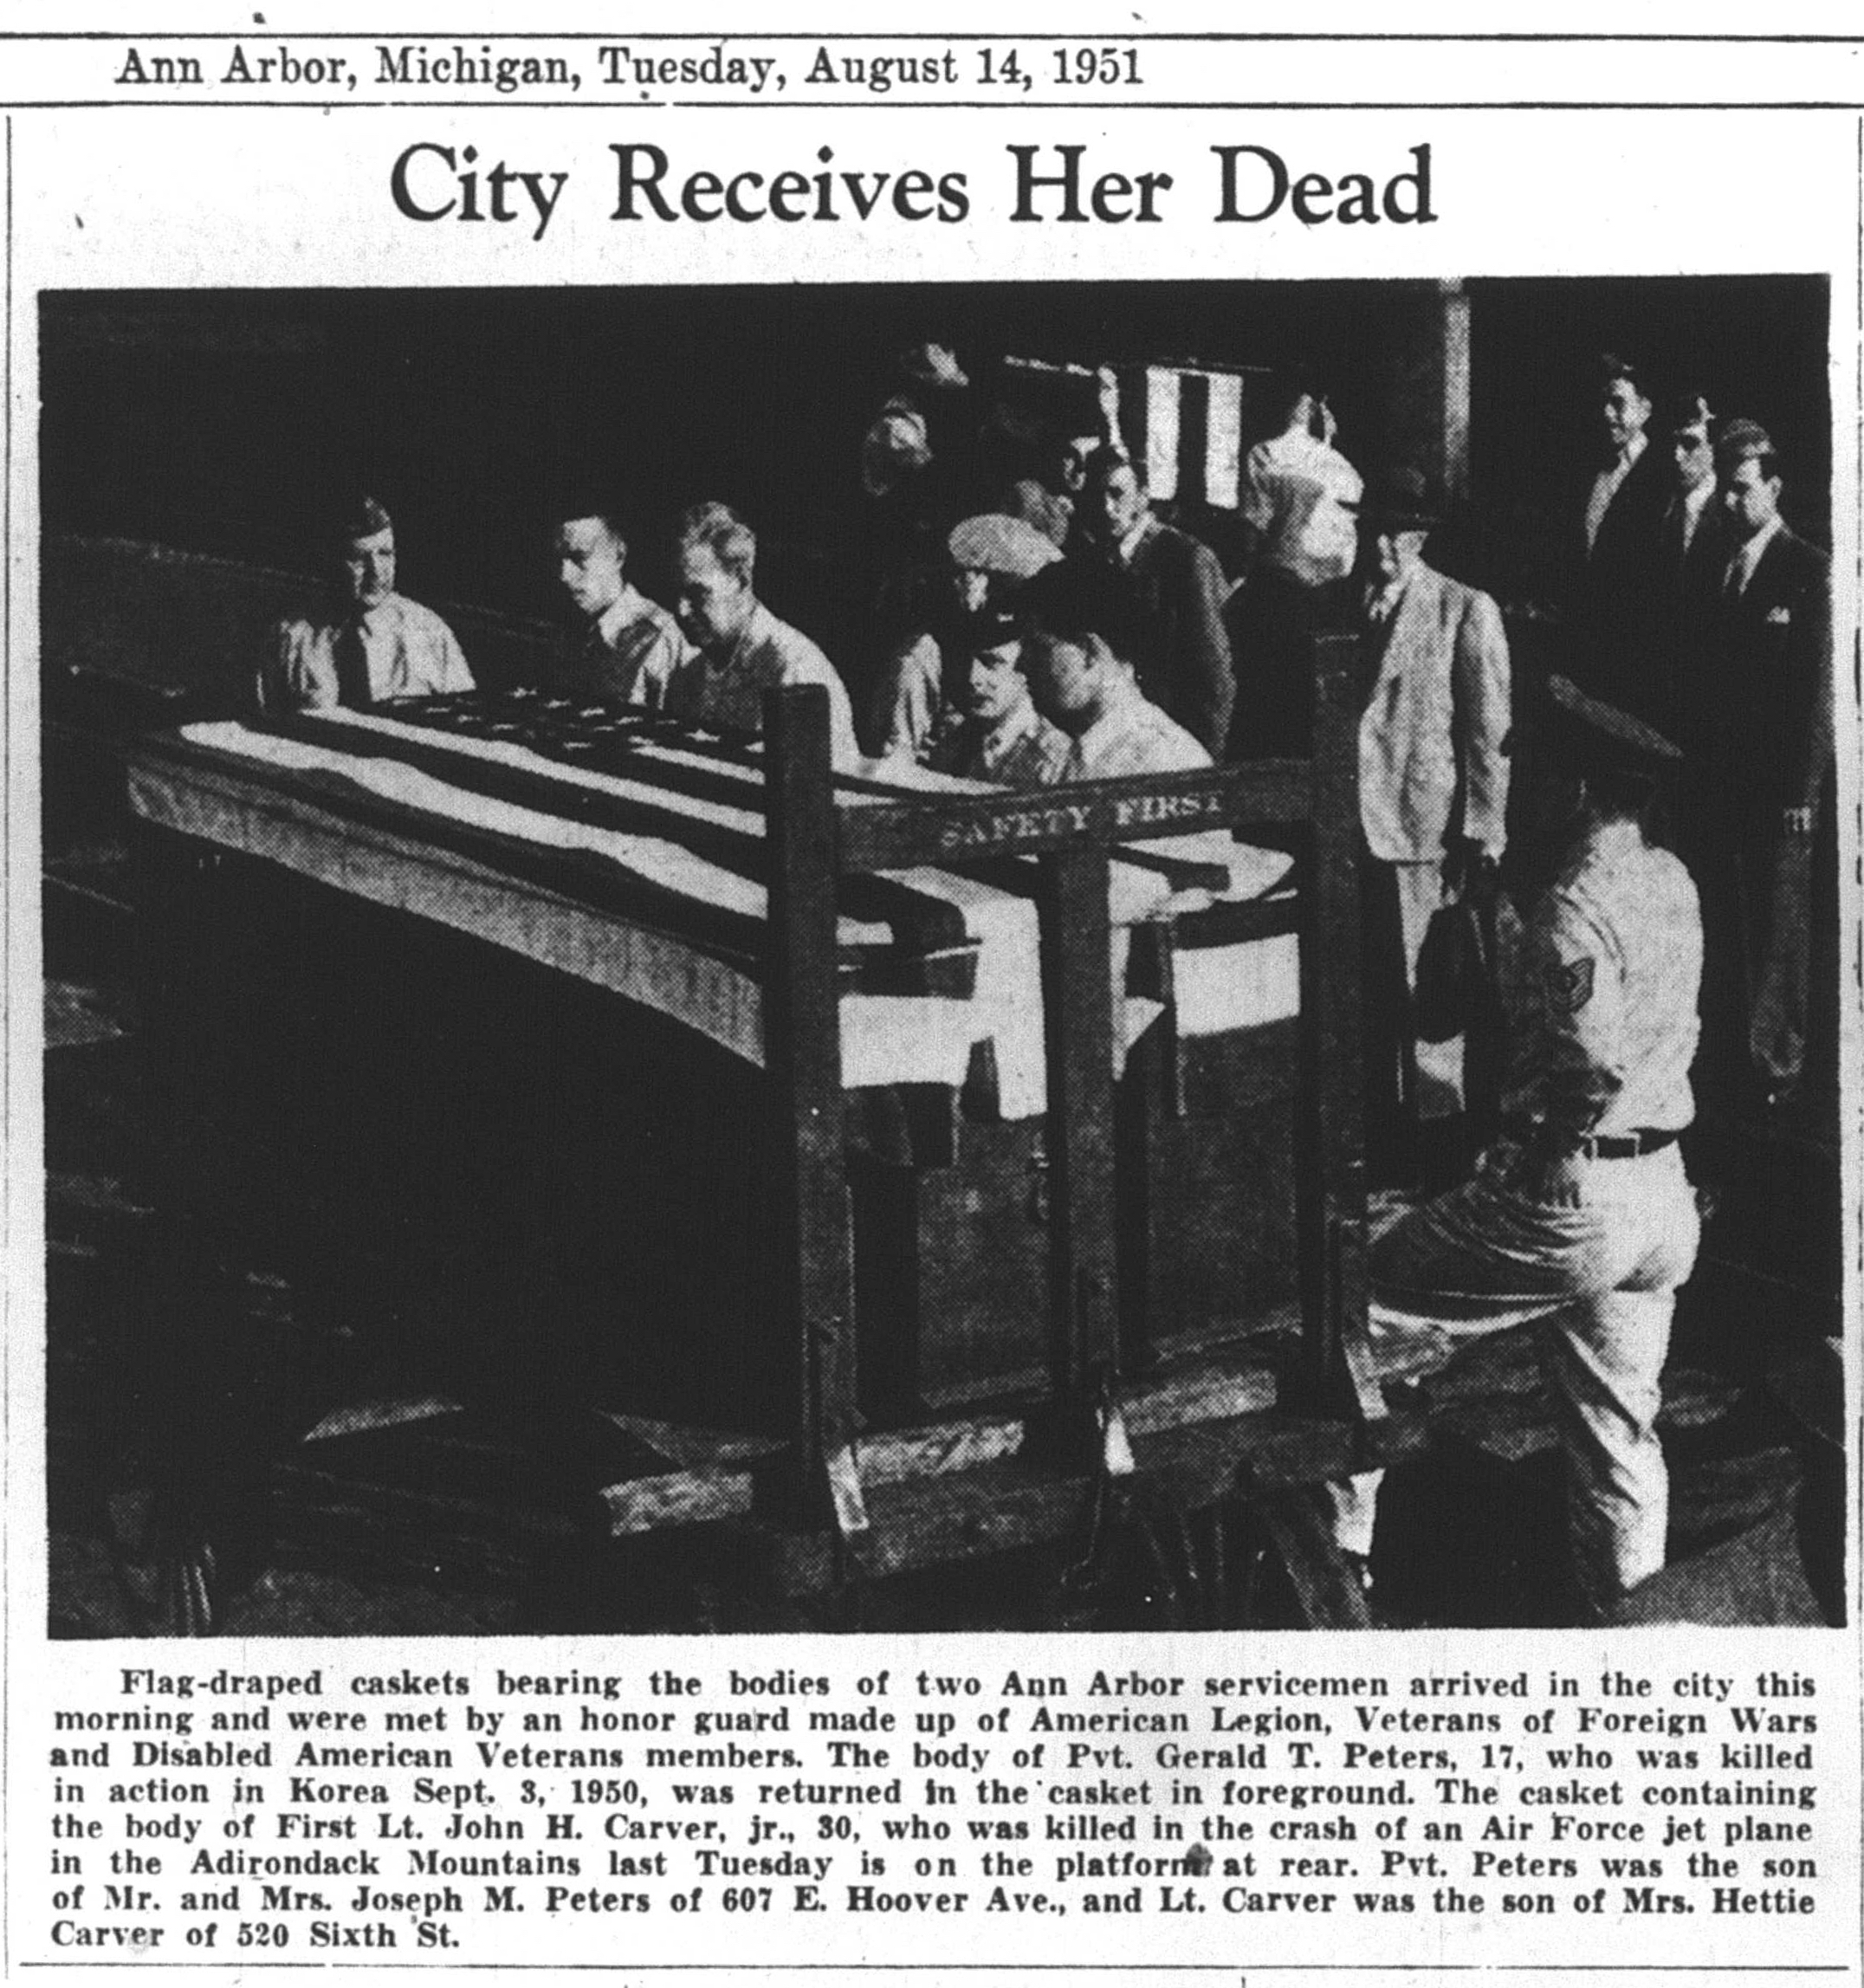 City Receives Her Dead image